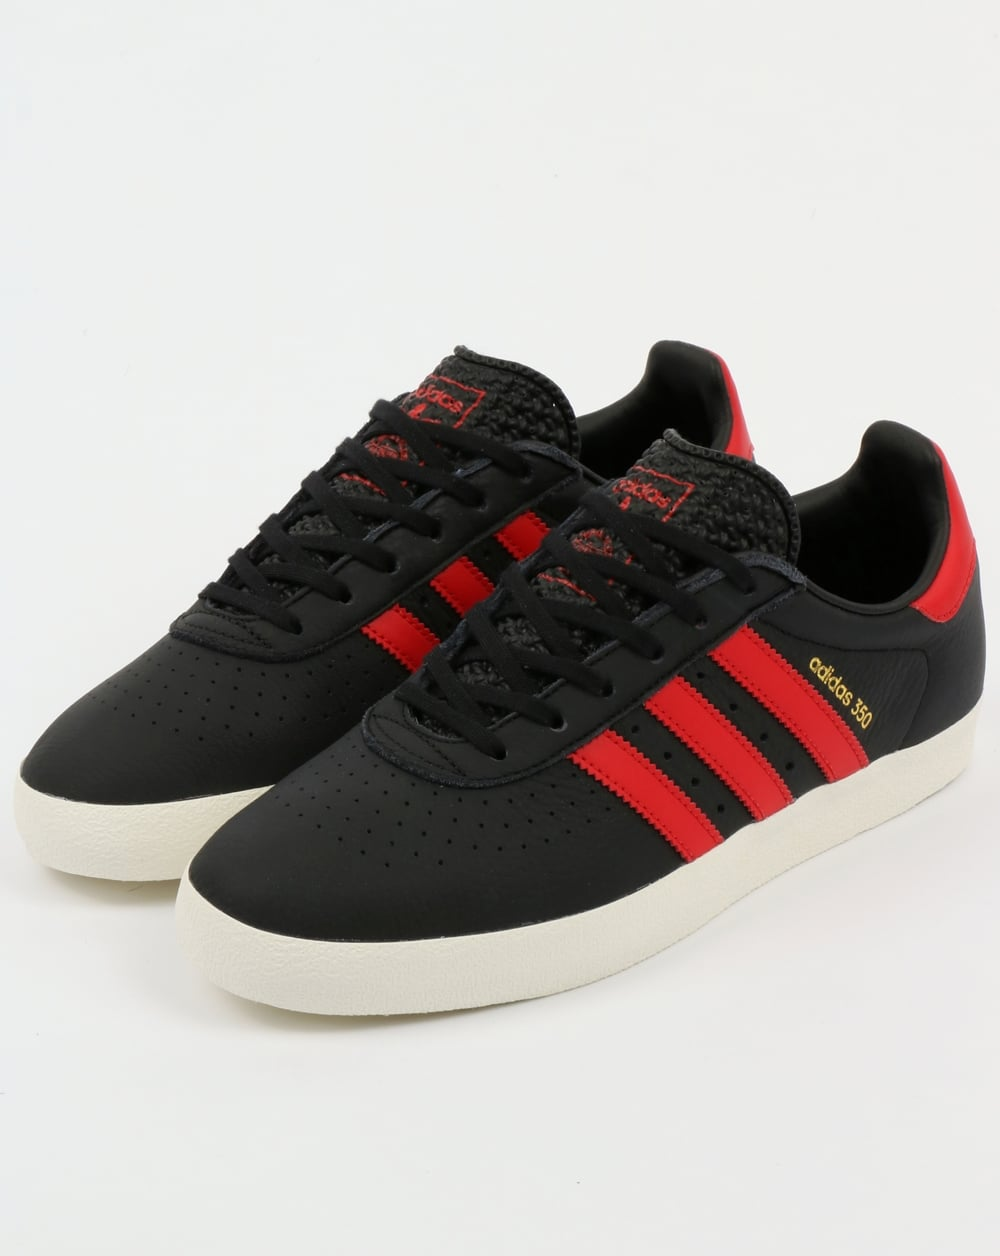 Adidas 350 Trainers Black, Red, scarlet, leather,shoes ...